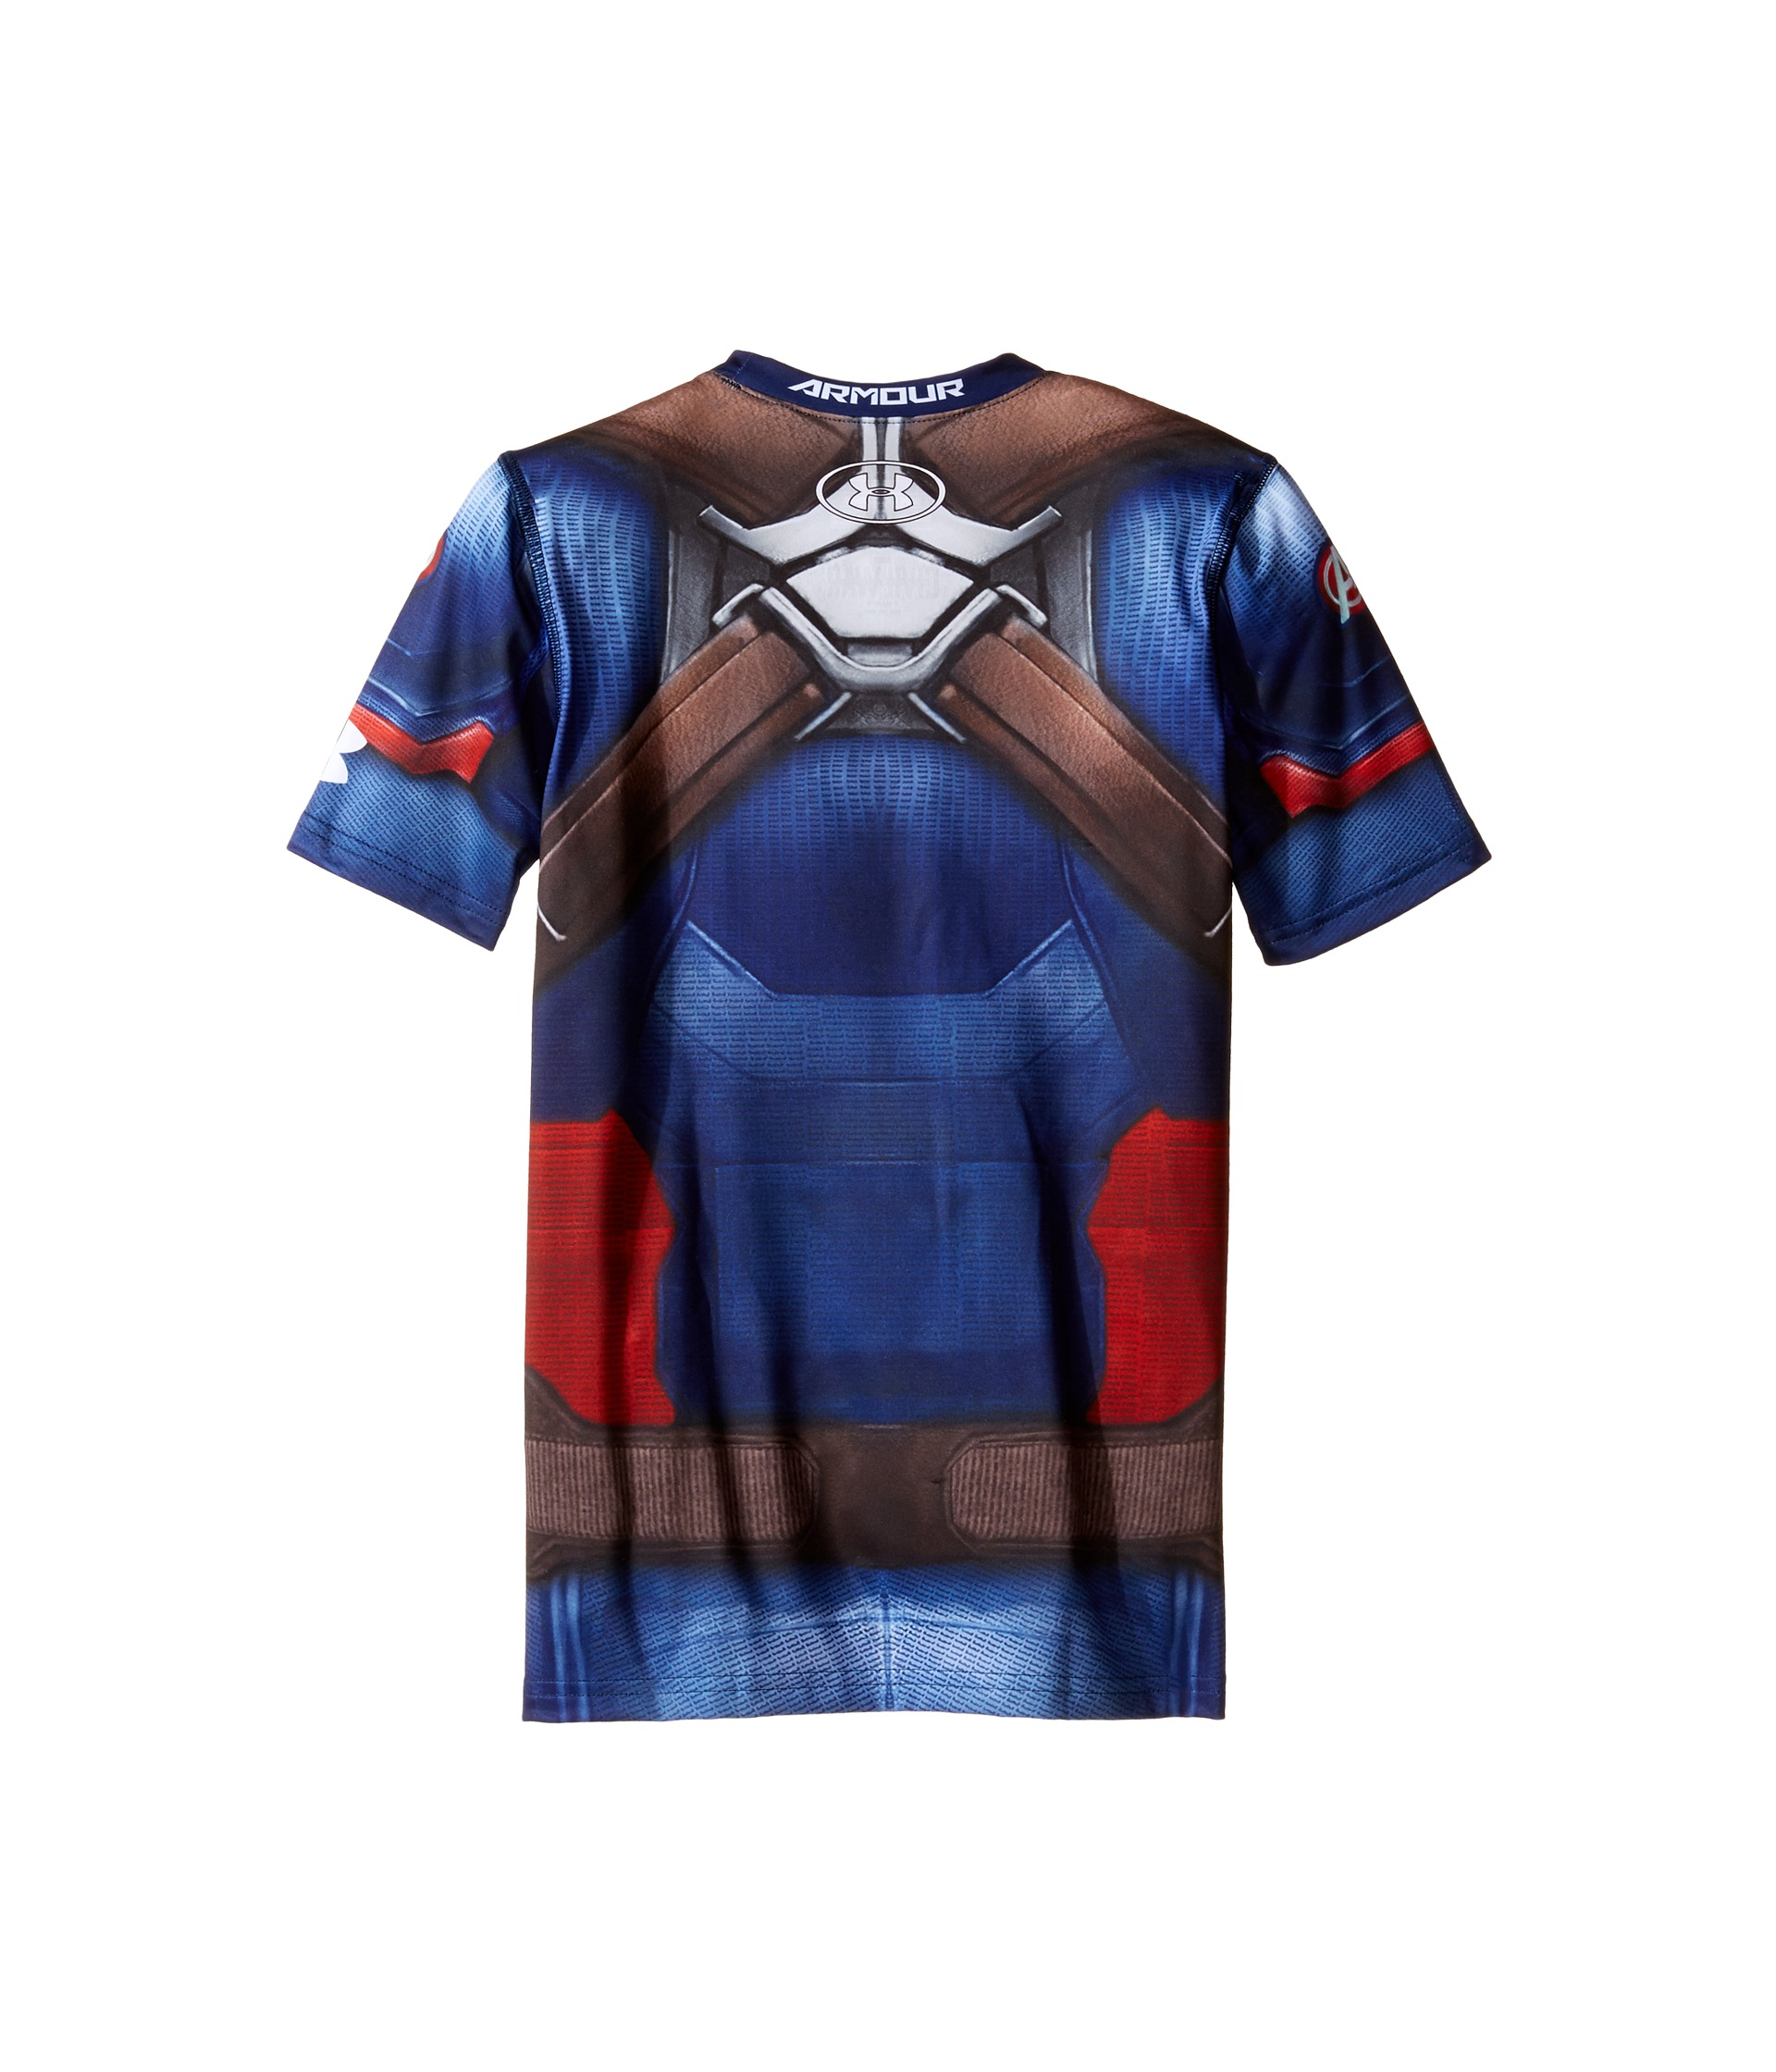 56bbfeb94 under armour t shirts kids blue cheap > OFF38% The Largest Catalog ...